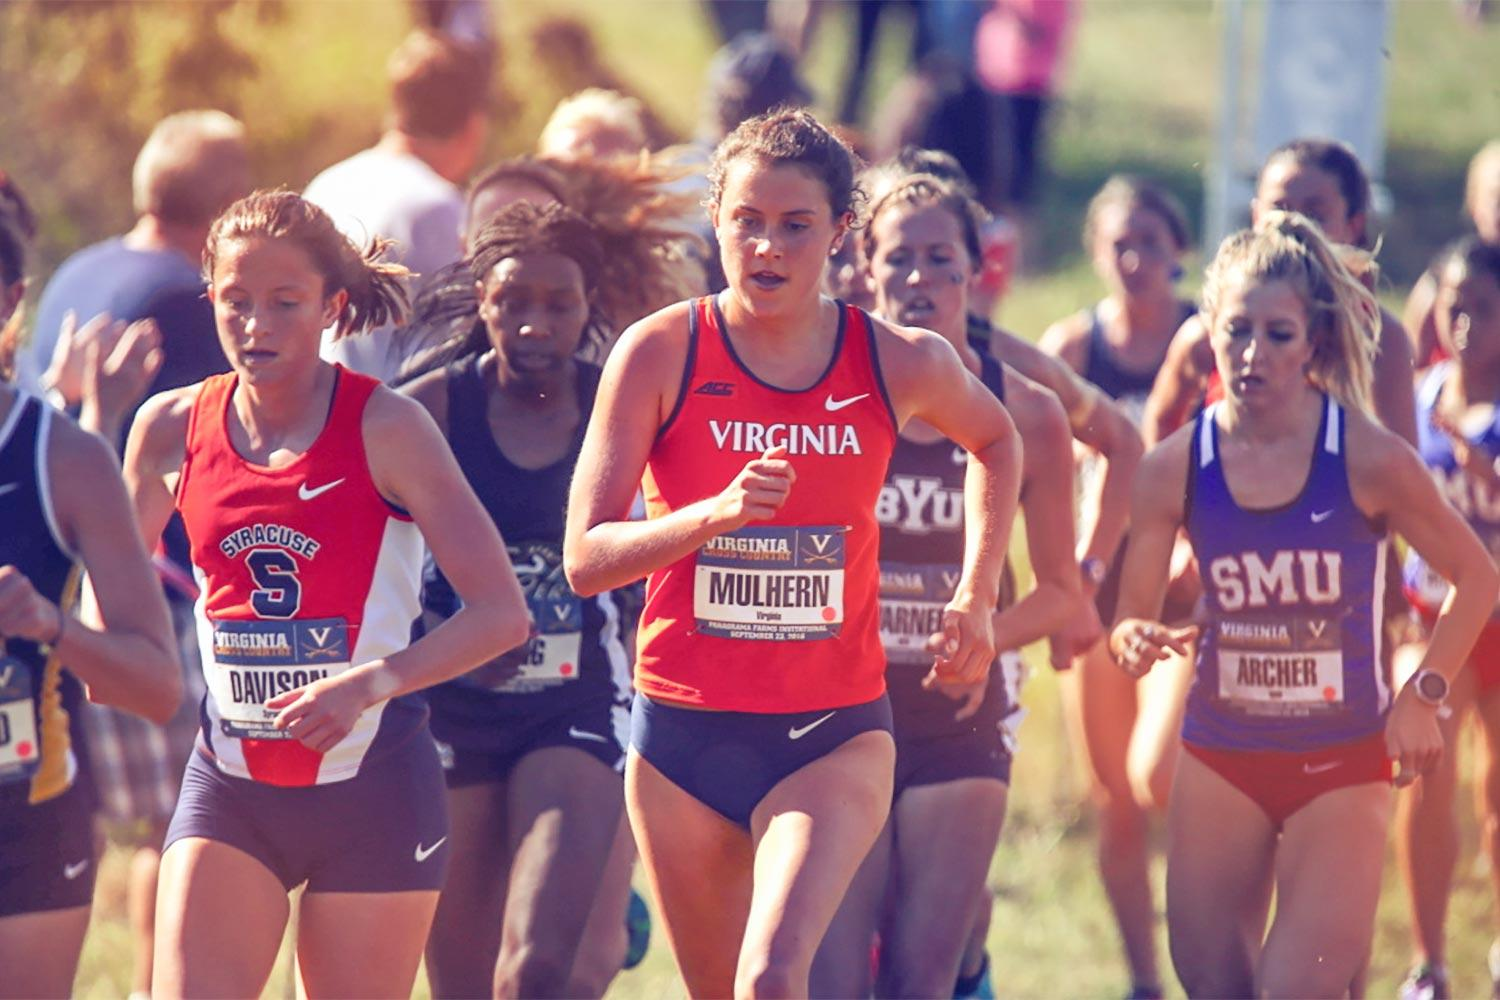 Emily Mulhern hopes to recapture her first-year form after undergoing surgery for a stress fracture in the spring. (UVA Athletics photo)